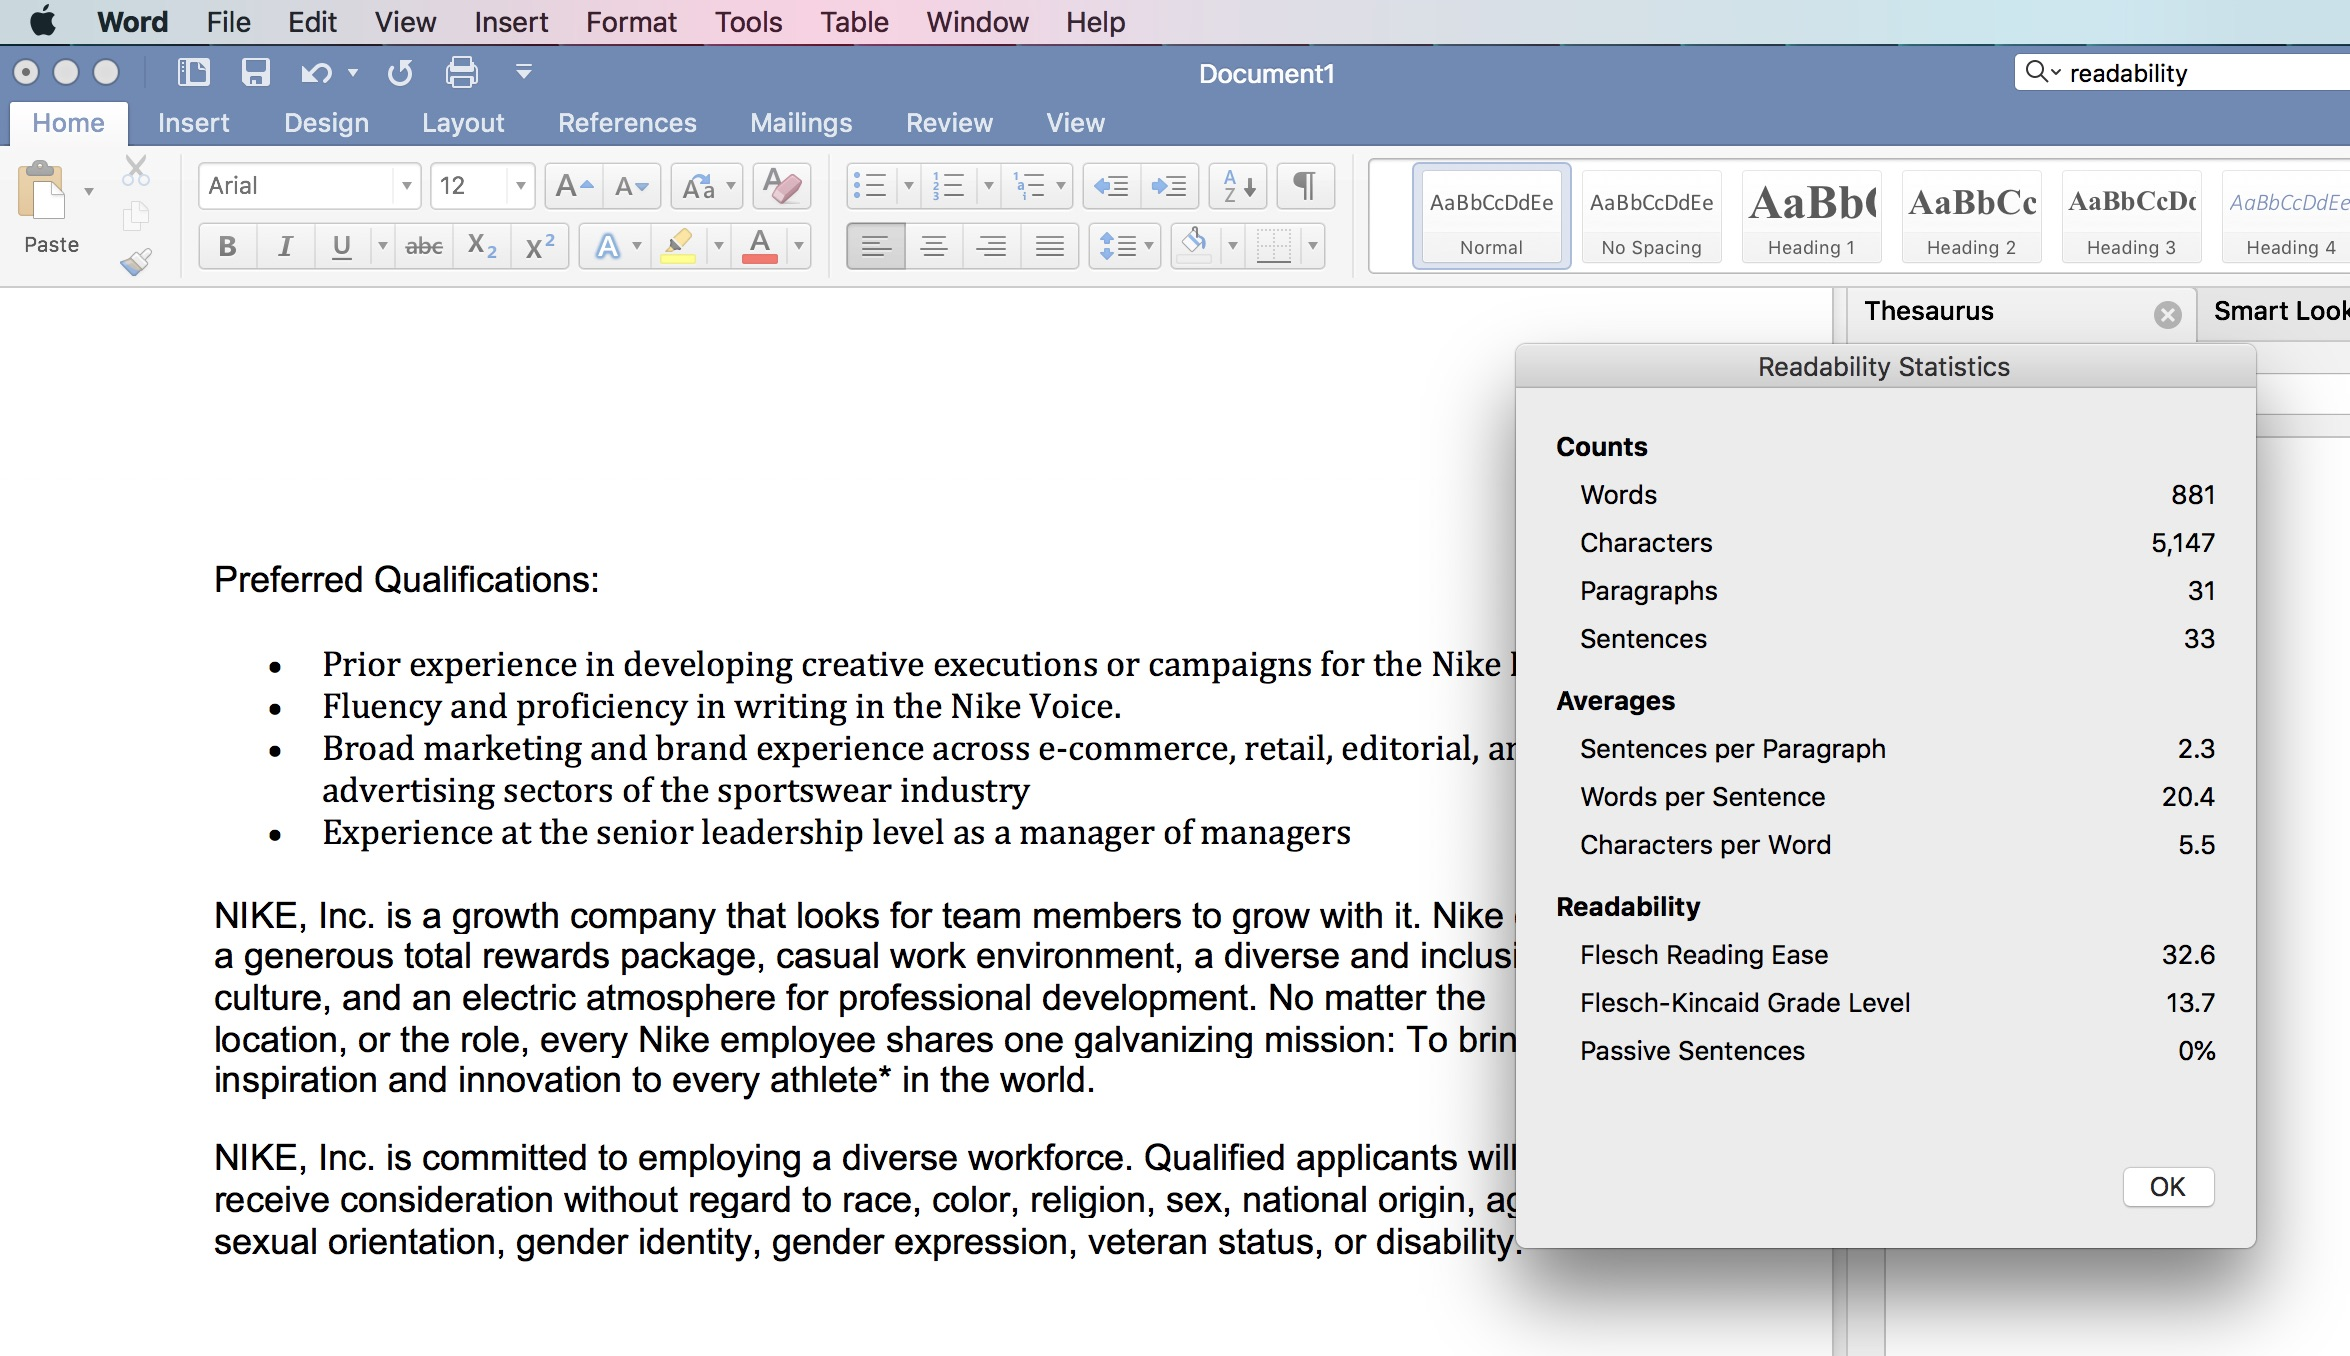 Microsoft Word offers readability stats to analyze your text